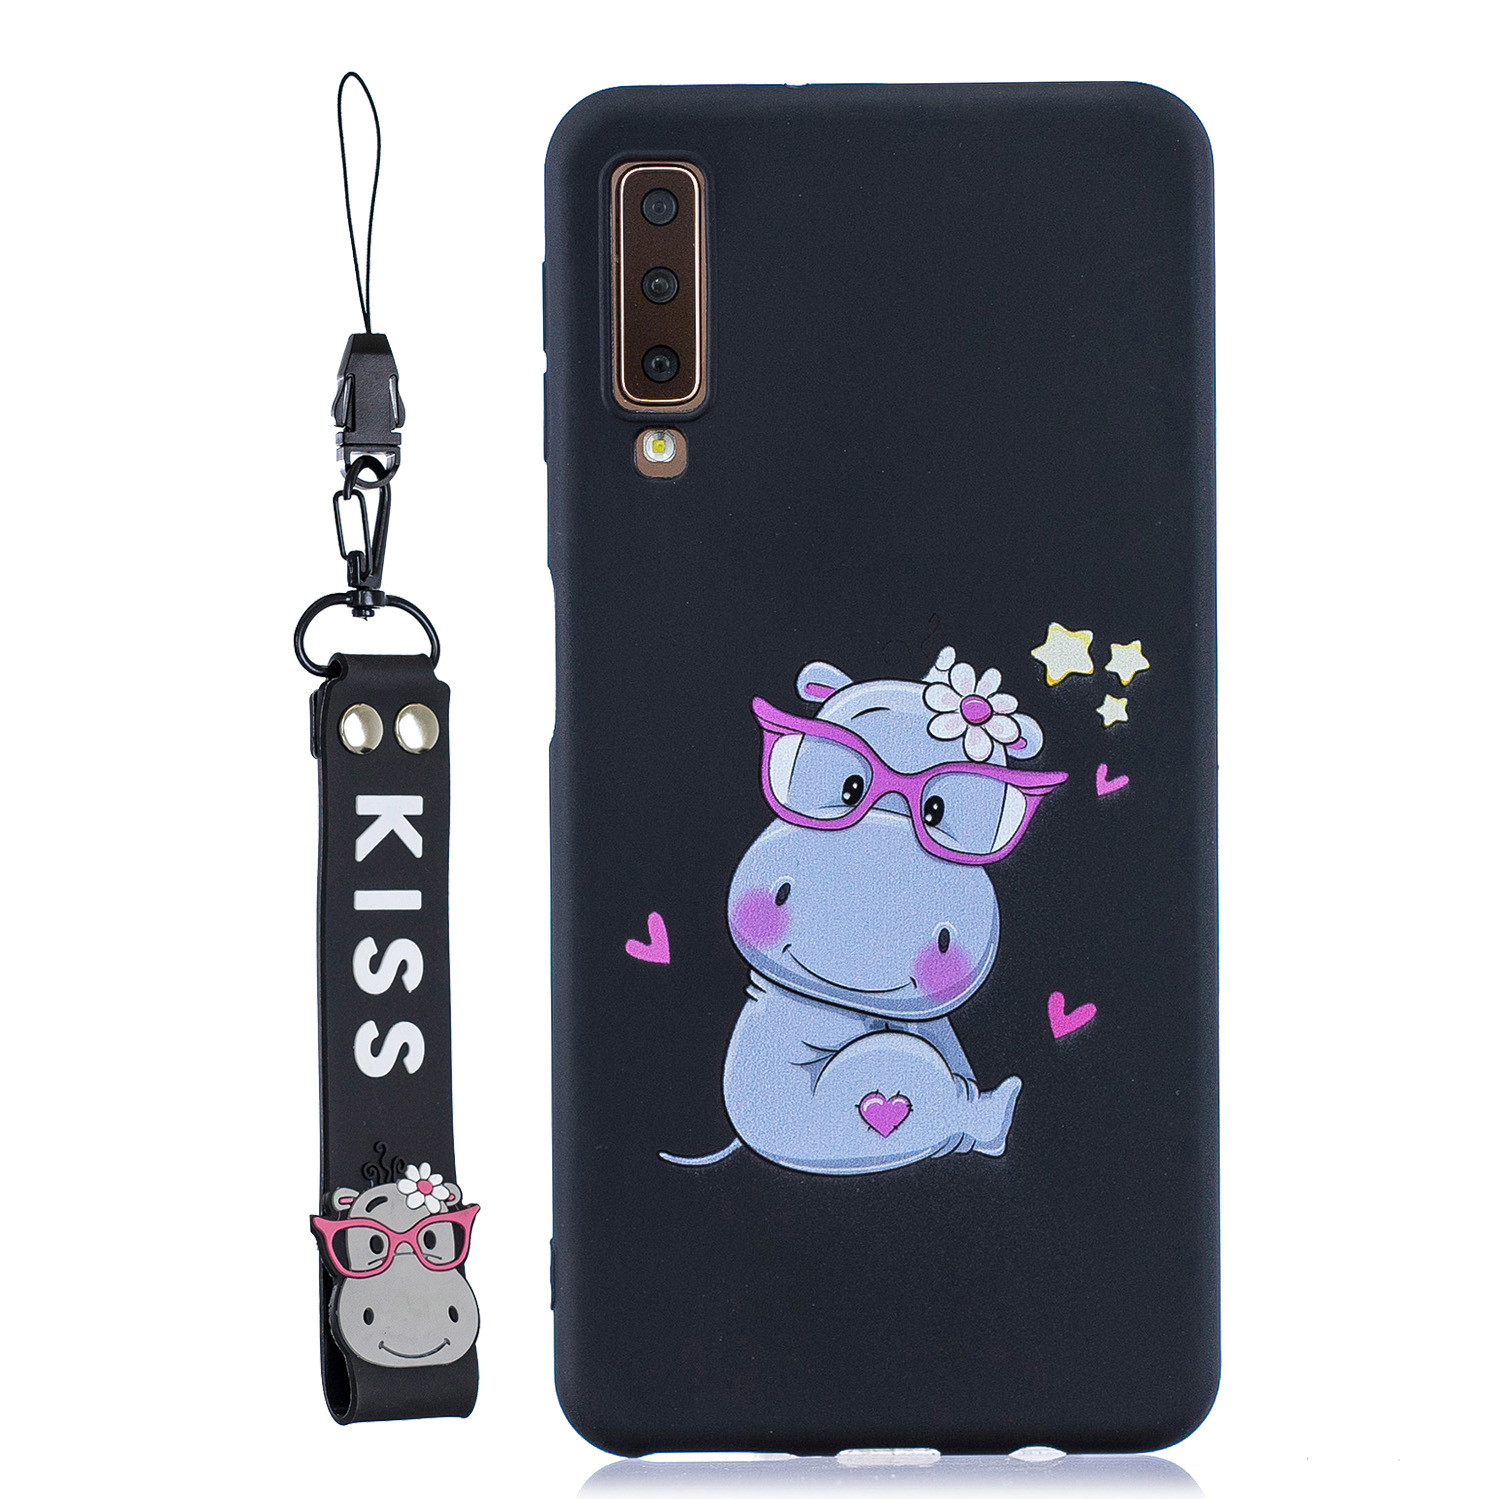 For Samsung A7 2018 Cartoon Lovely Coloured Painted Soft TPU Back Cover Non-slip Shockproof Full Protective Case with Lanyard black